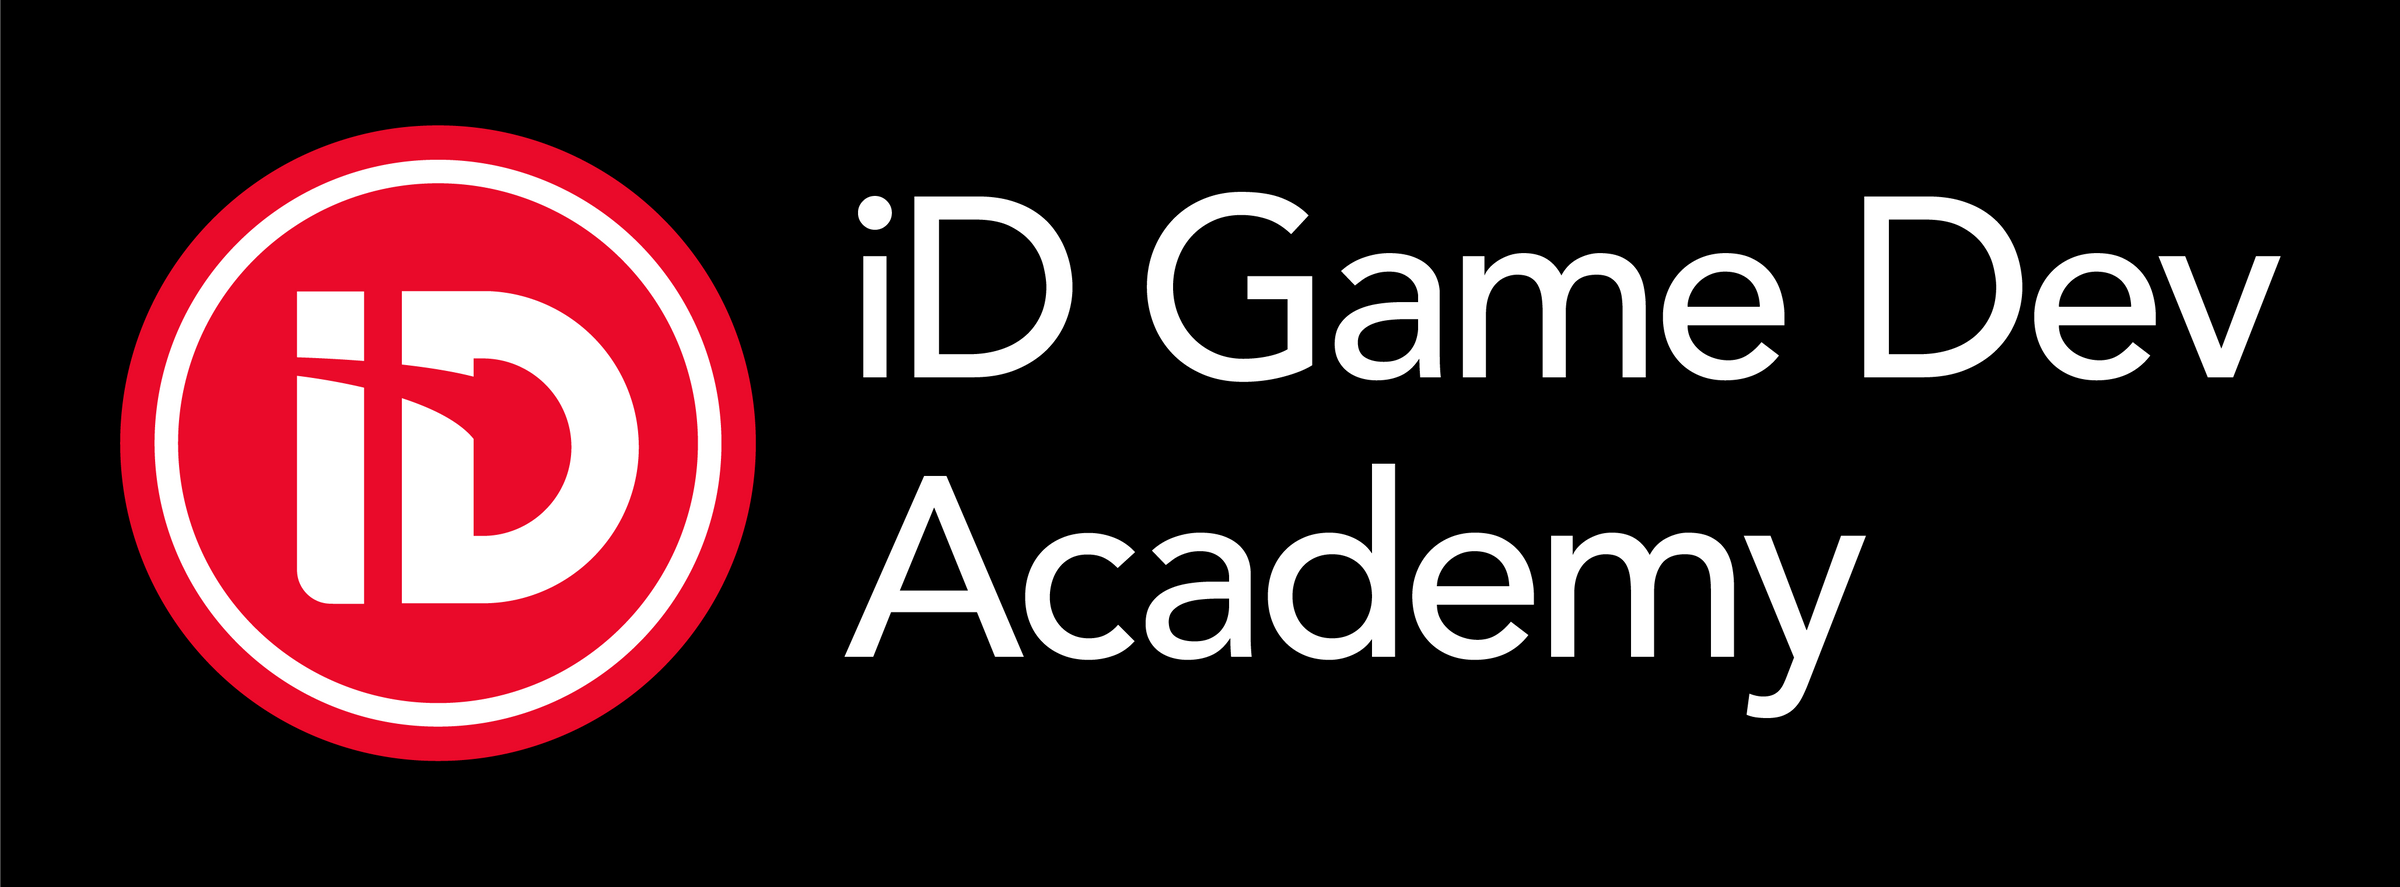 iD Game Dev Academy for Teens - Held at Harvard Law School: 1585 Massachusetts Ave